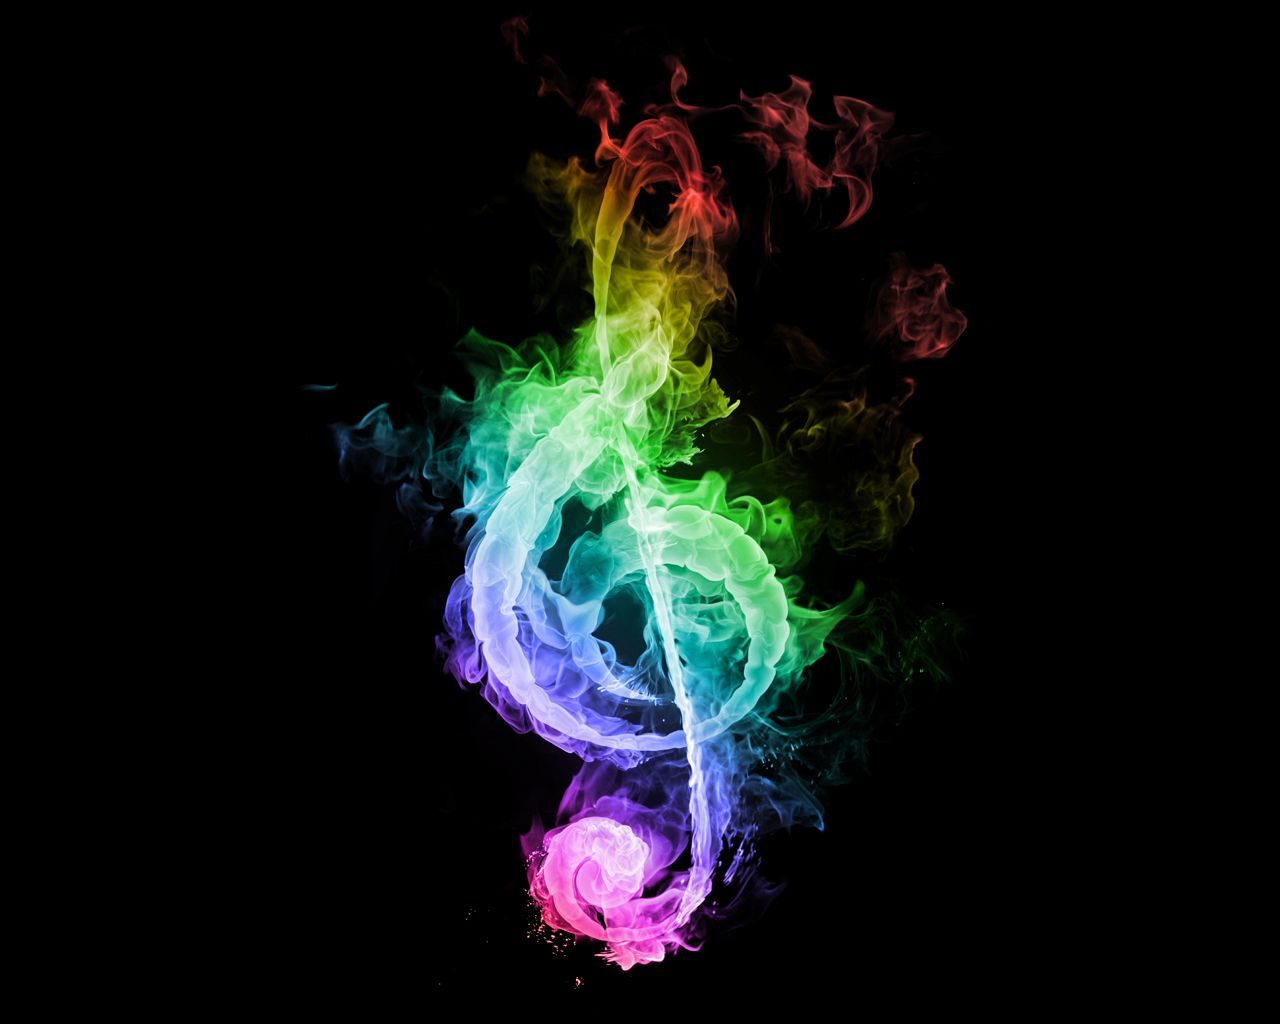 Rainbow Music Notes Background Hd Wallpaper Background Images: Neon Music Notes Background